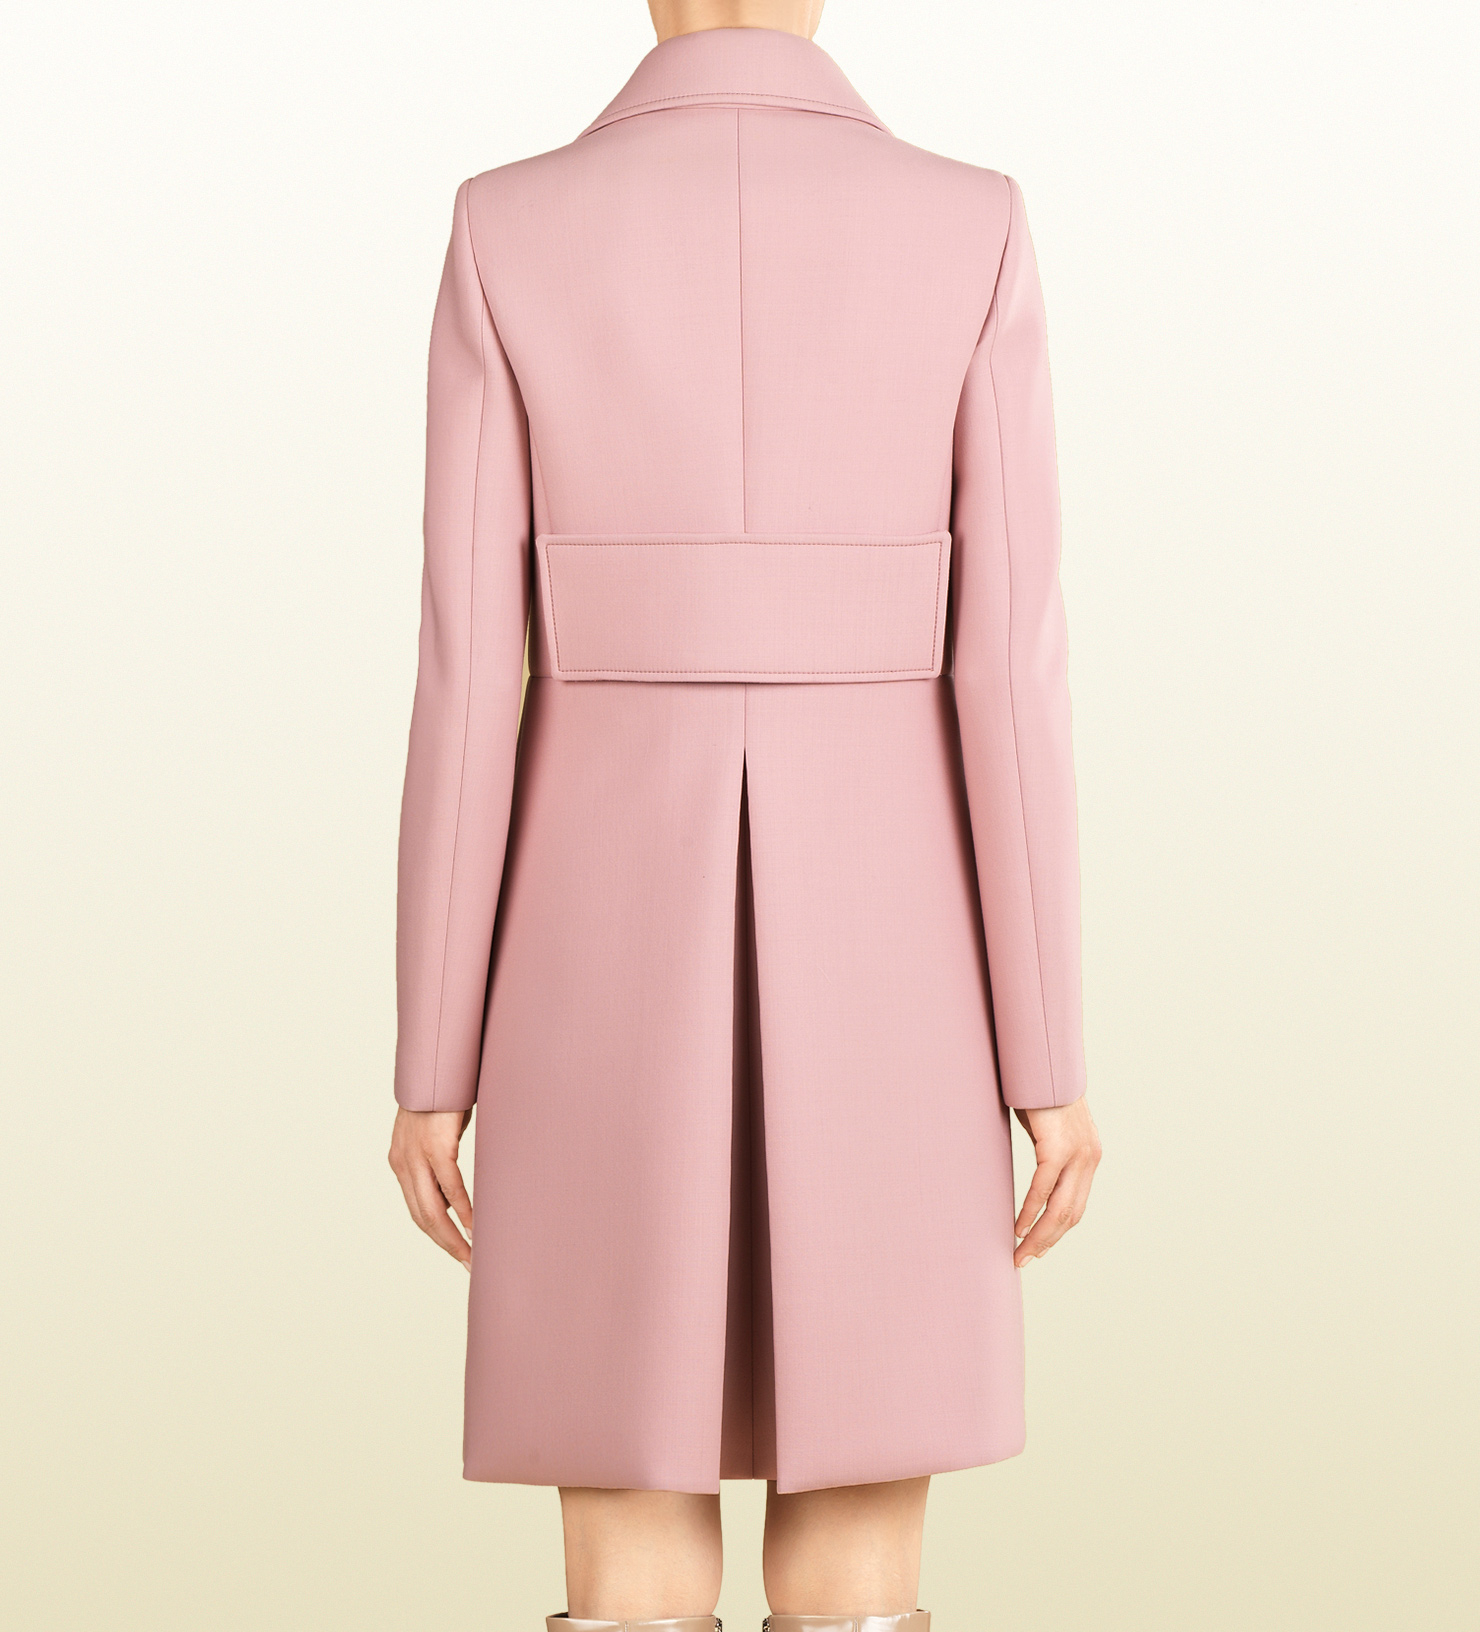 Gucci Wool Doublebreasted Coat in Pink | Lyst